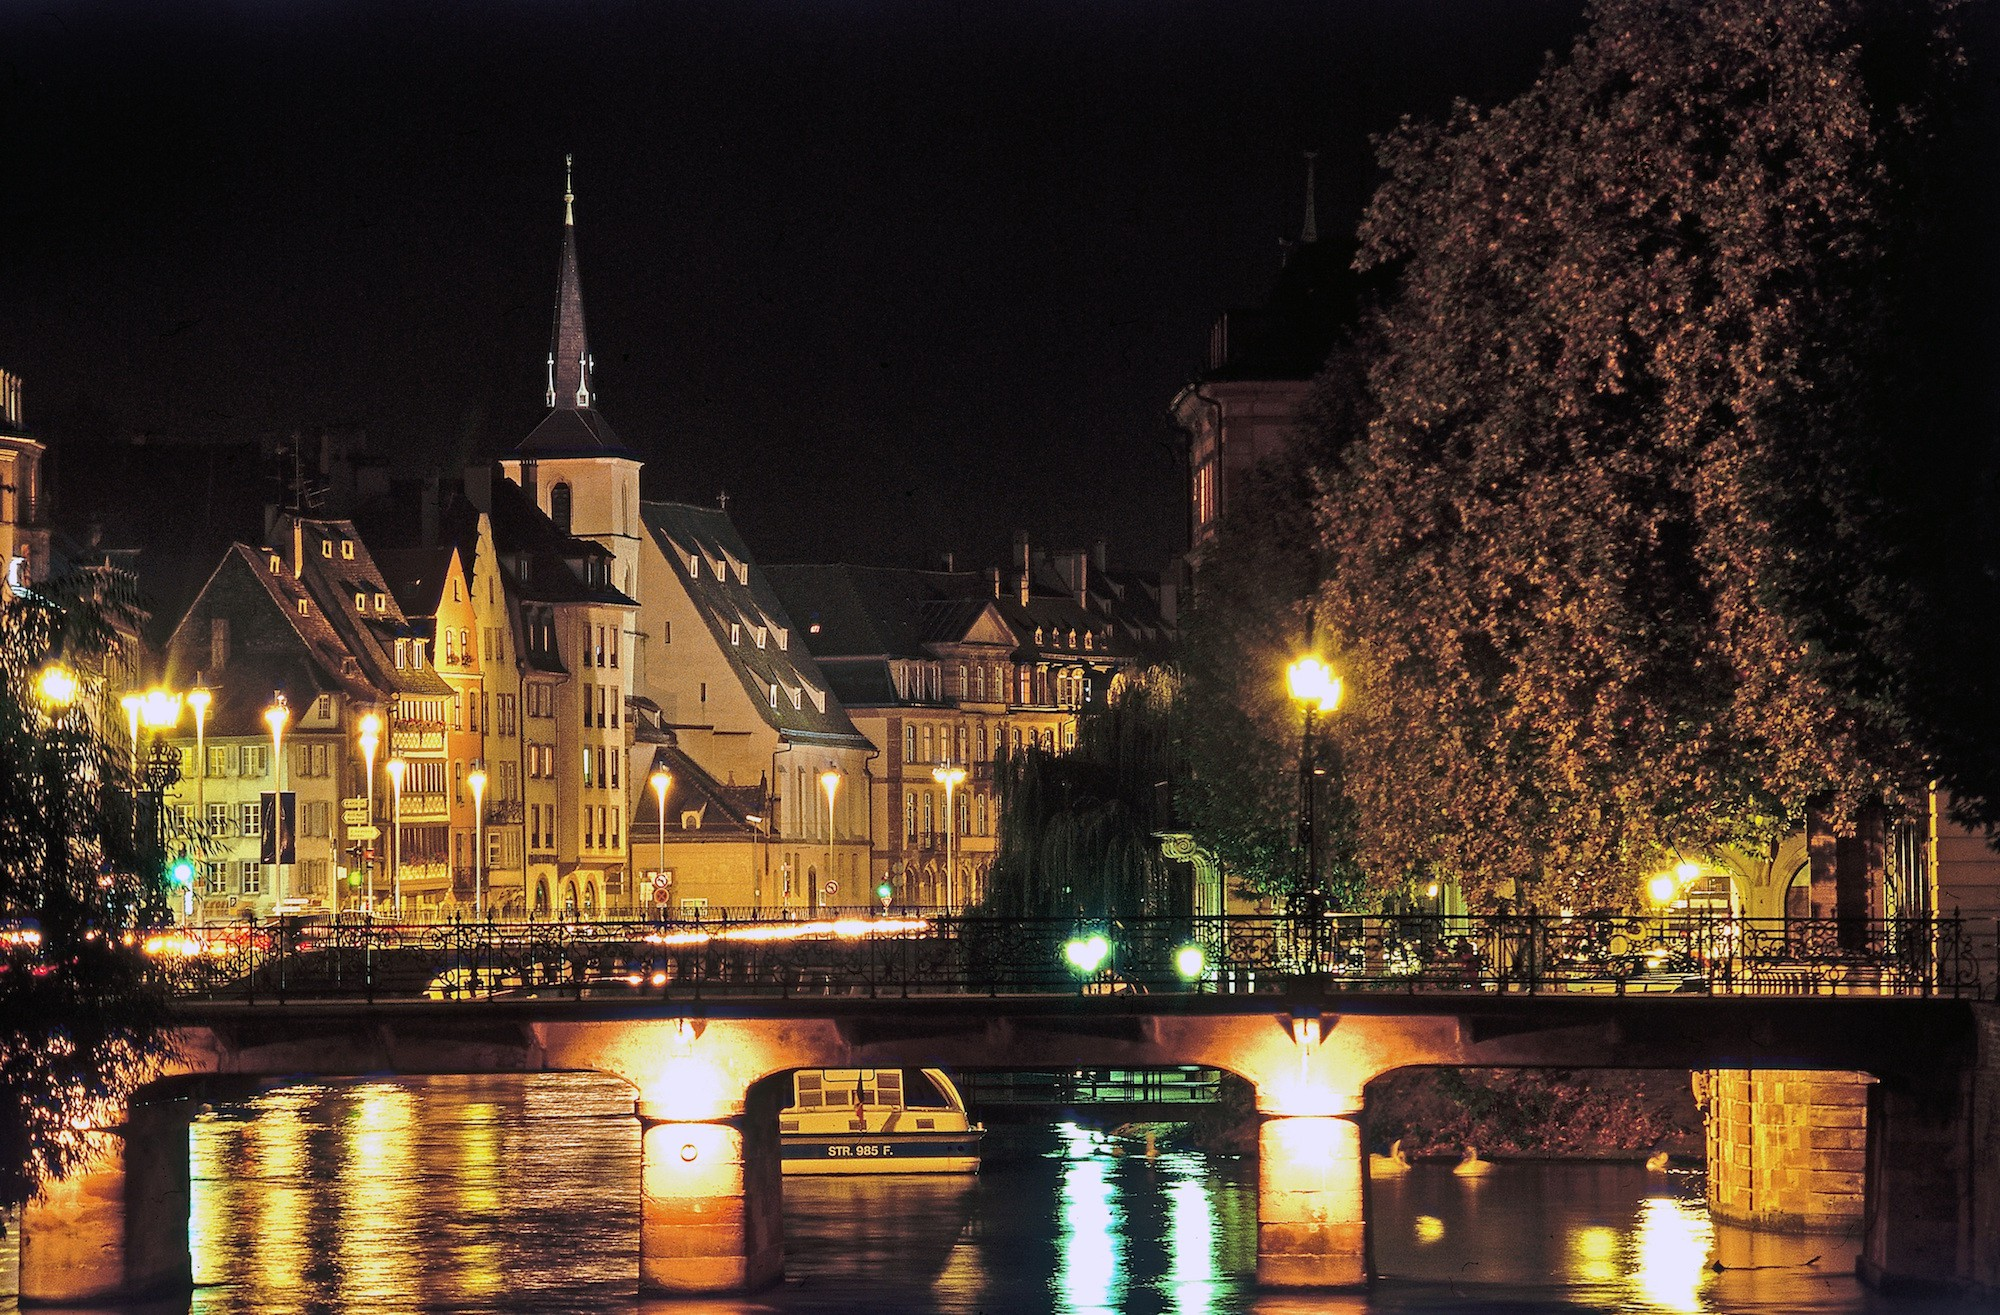 Quai Charles Frey and Saint Nicolas bridge in Strasbourg, France © Nicholas Hamm / OT Strasbourg